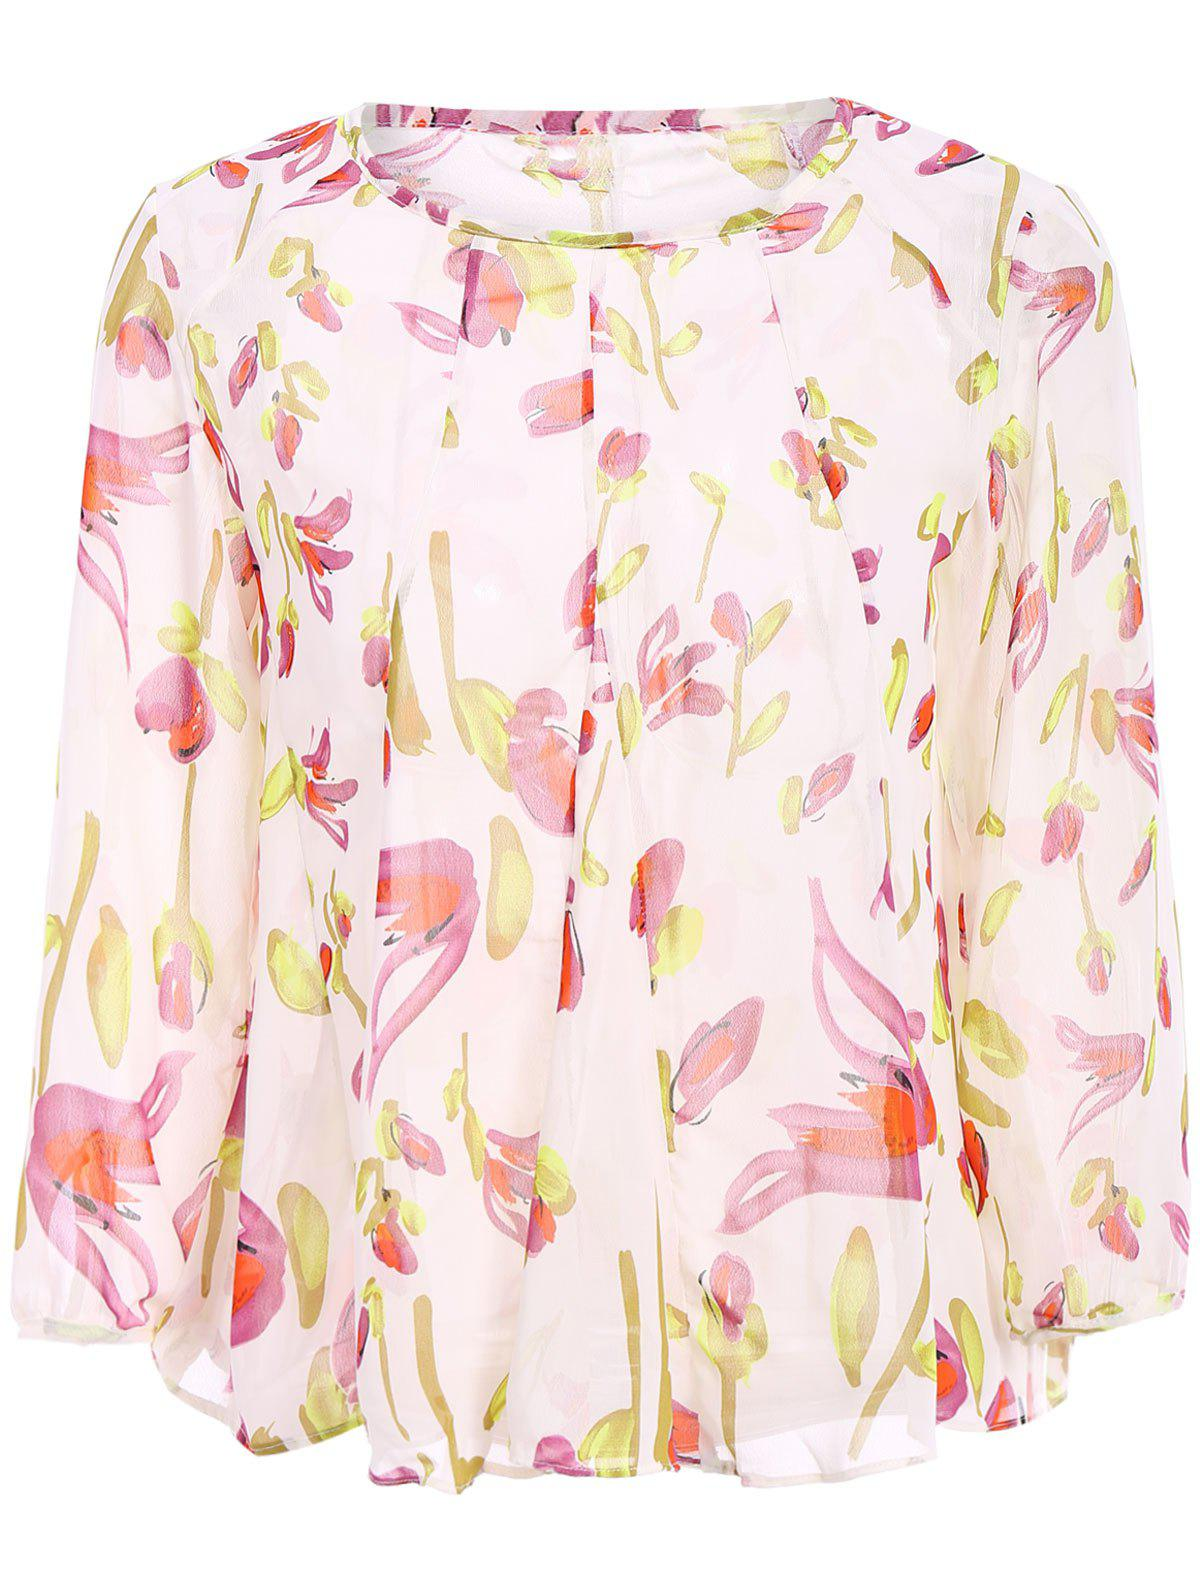 Stylish Long Sleeve Scoop Neck Floral Print Women's Blouse - OFF WHITE M